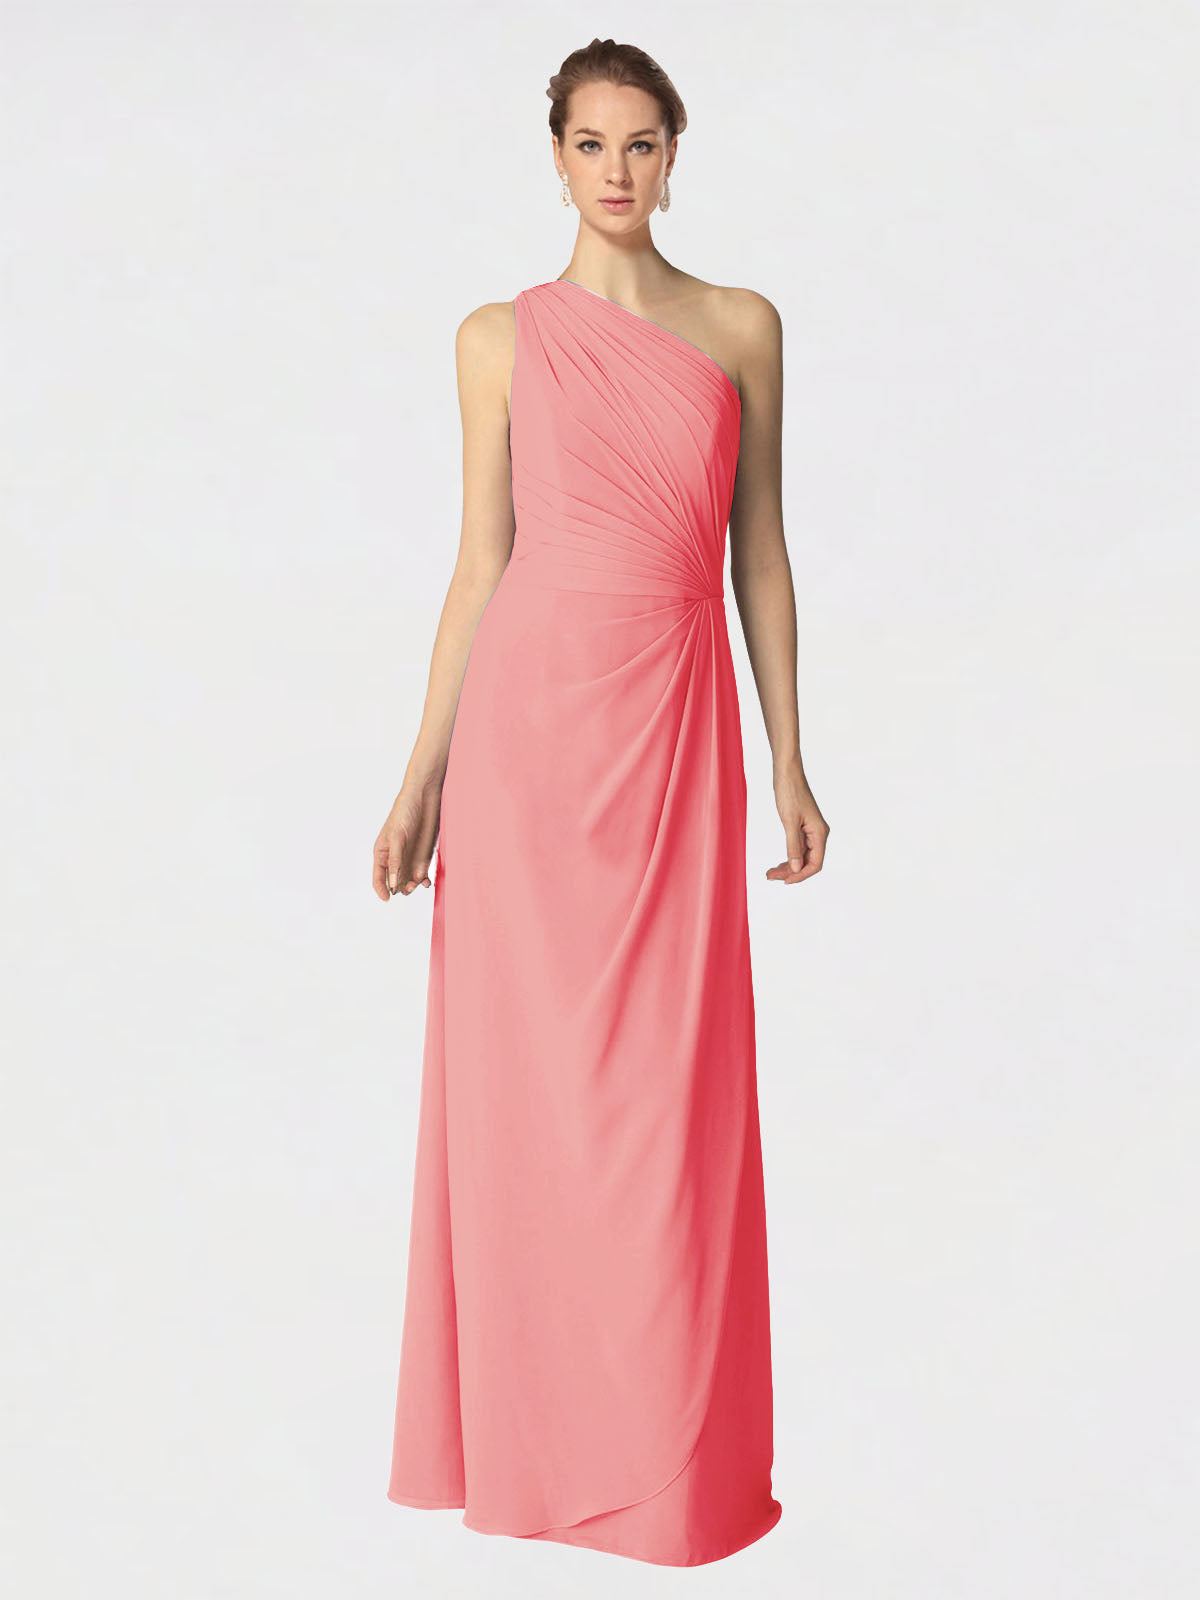 Long A-Line One Shoulder Sleeveless Watermelon Chiffon Bridesmaid Dress Aurora